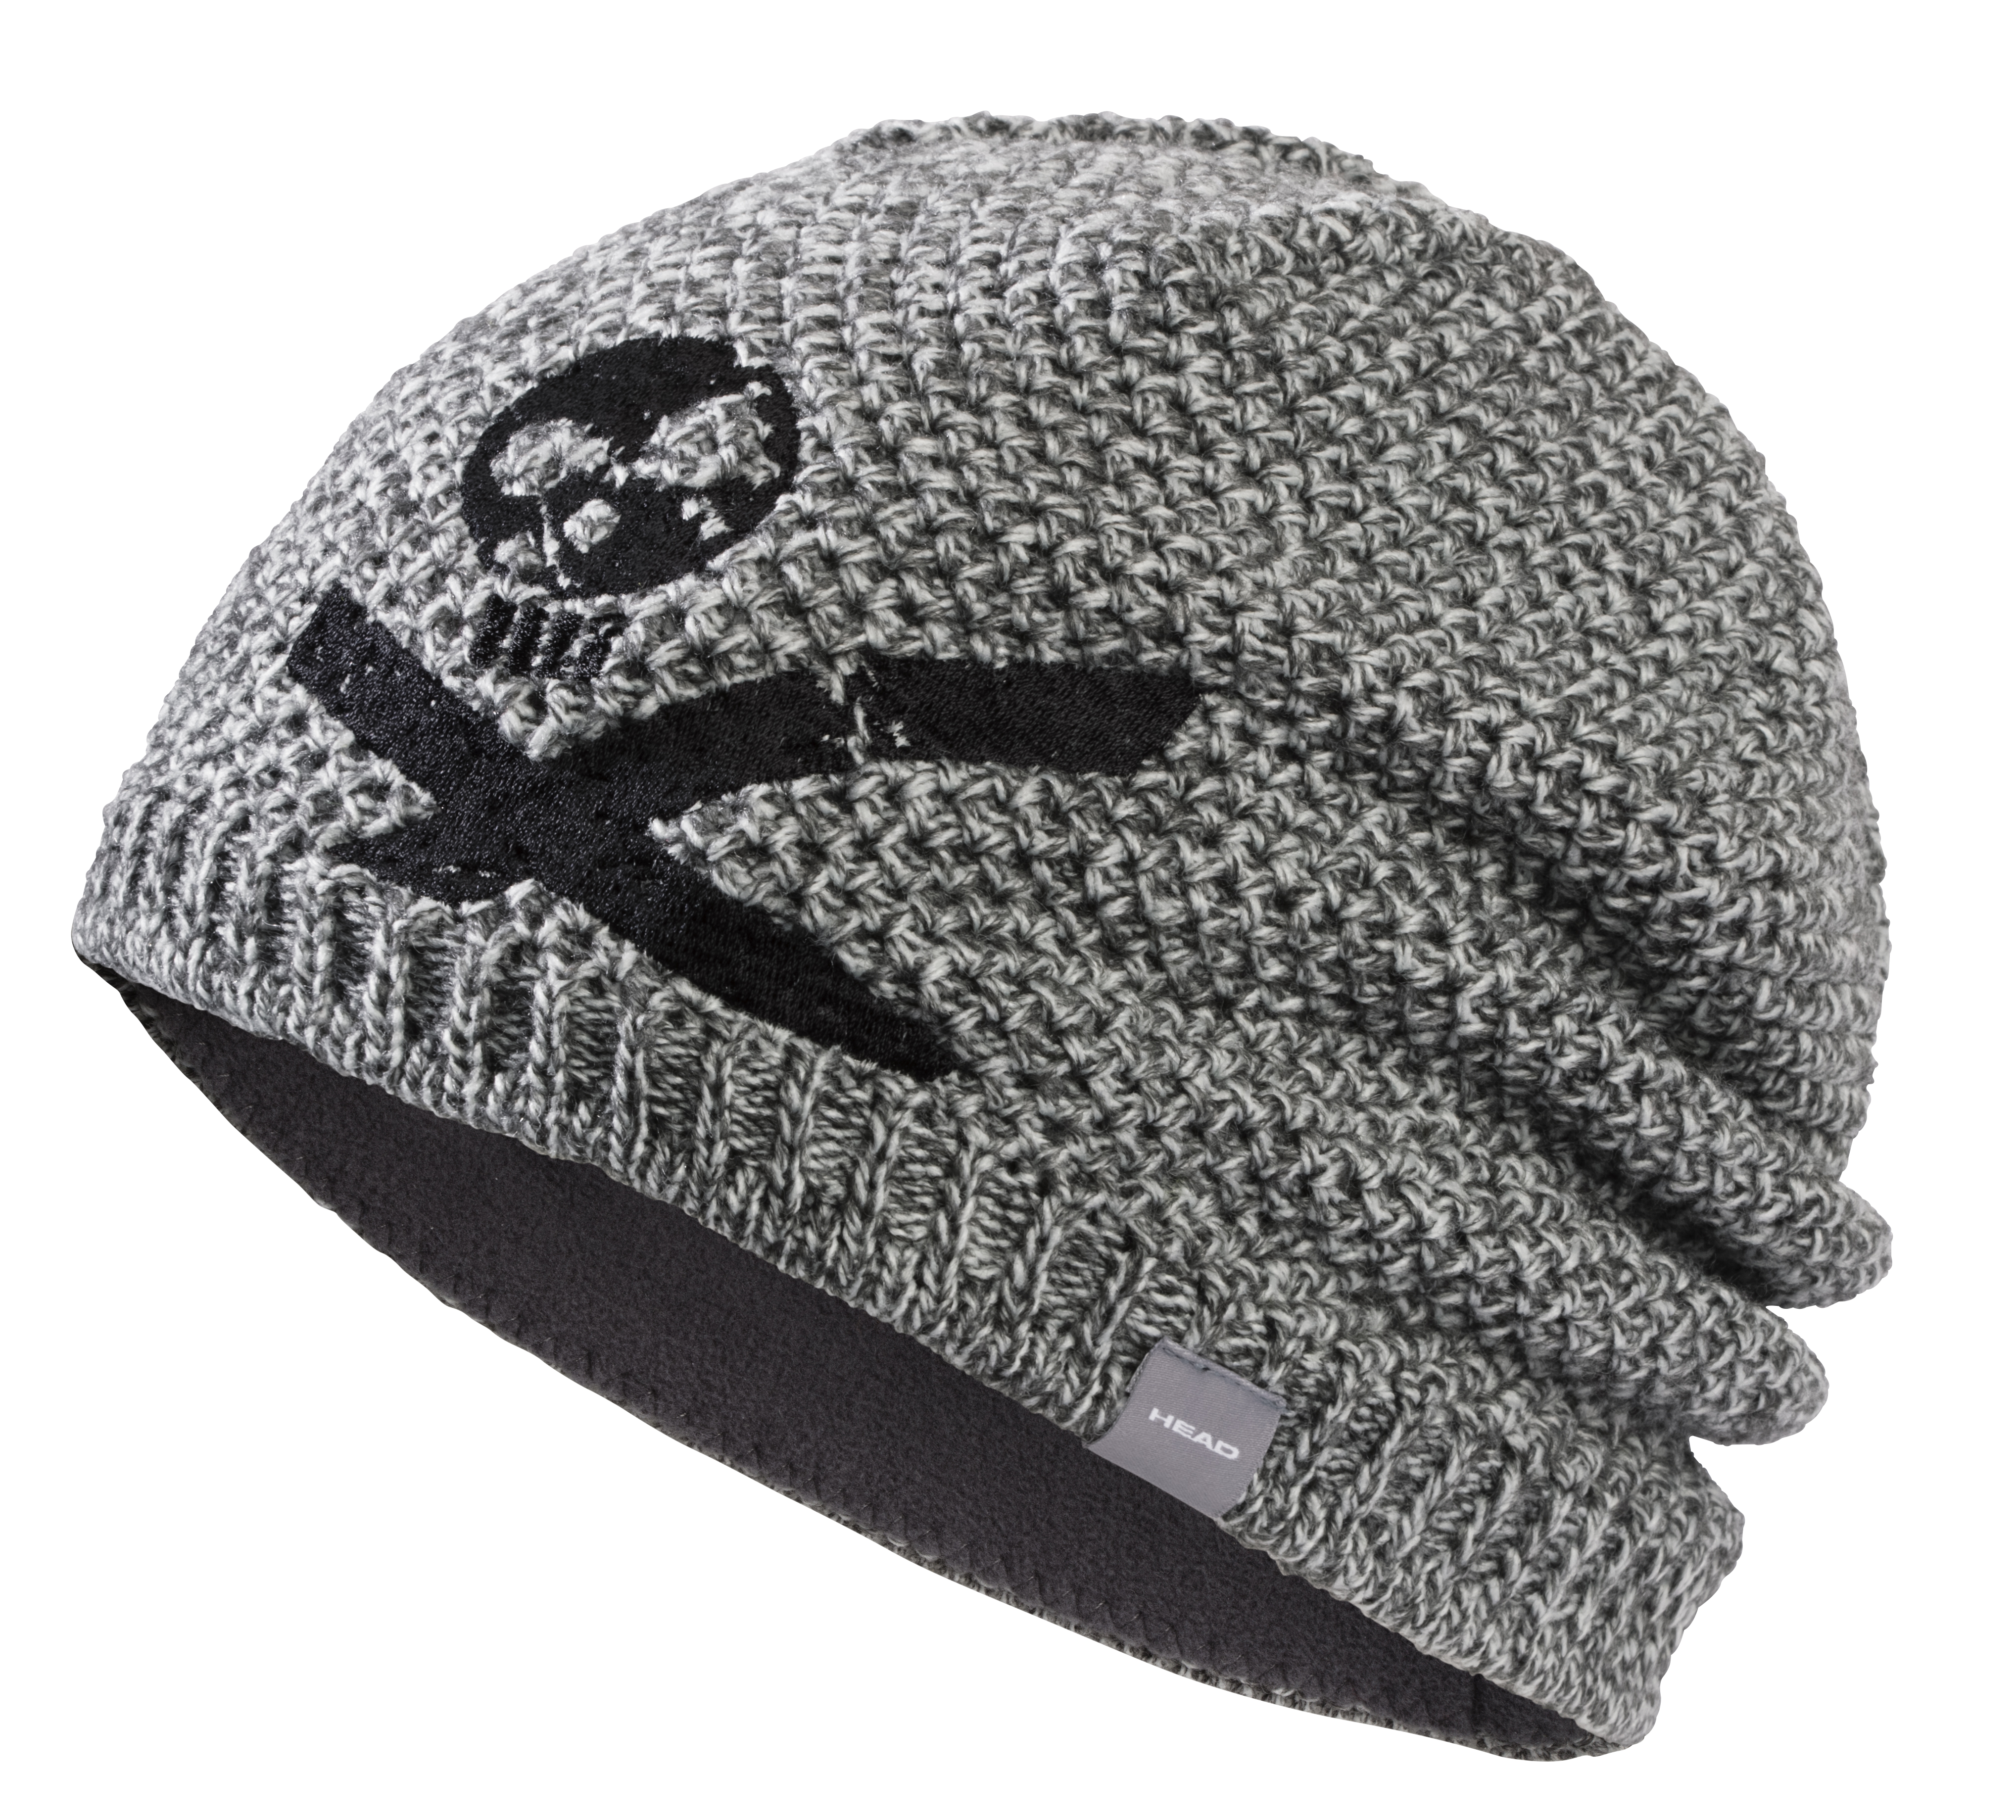 HEAD RACE REBELS BEANIE - ( TI) - 2020